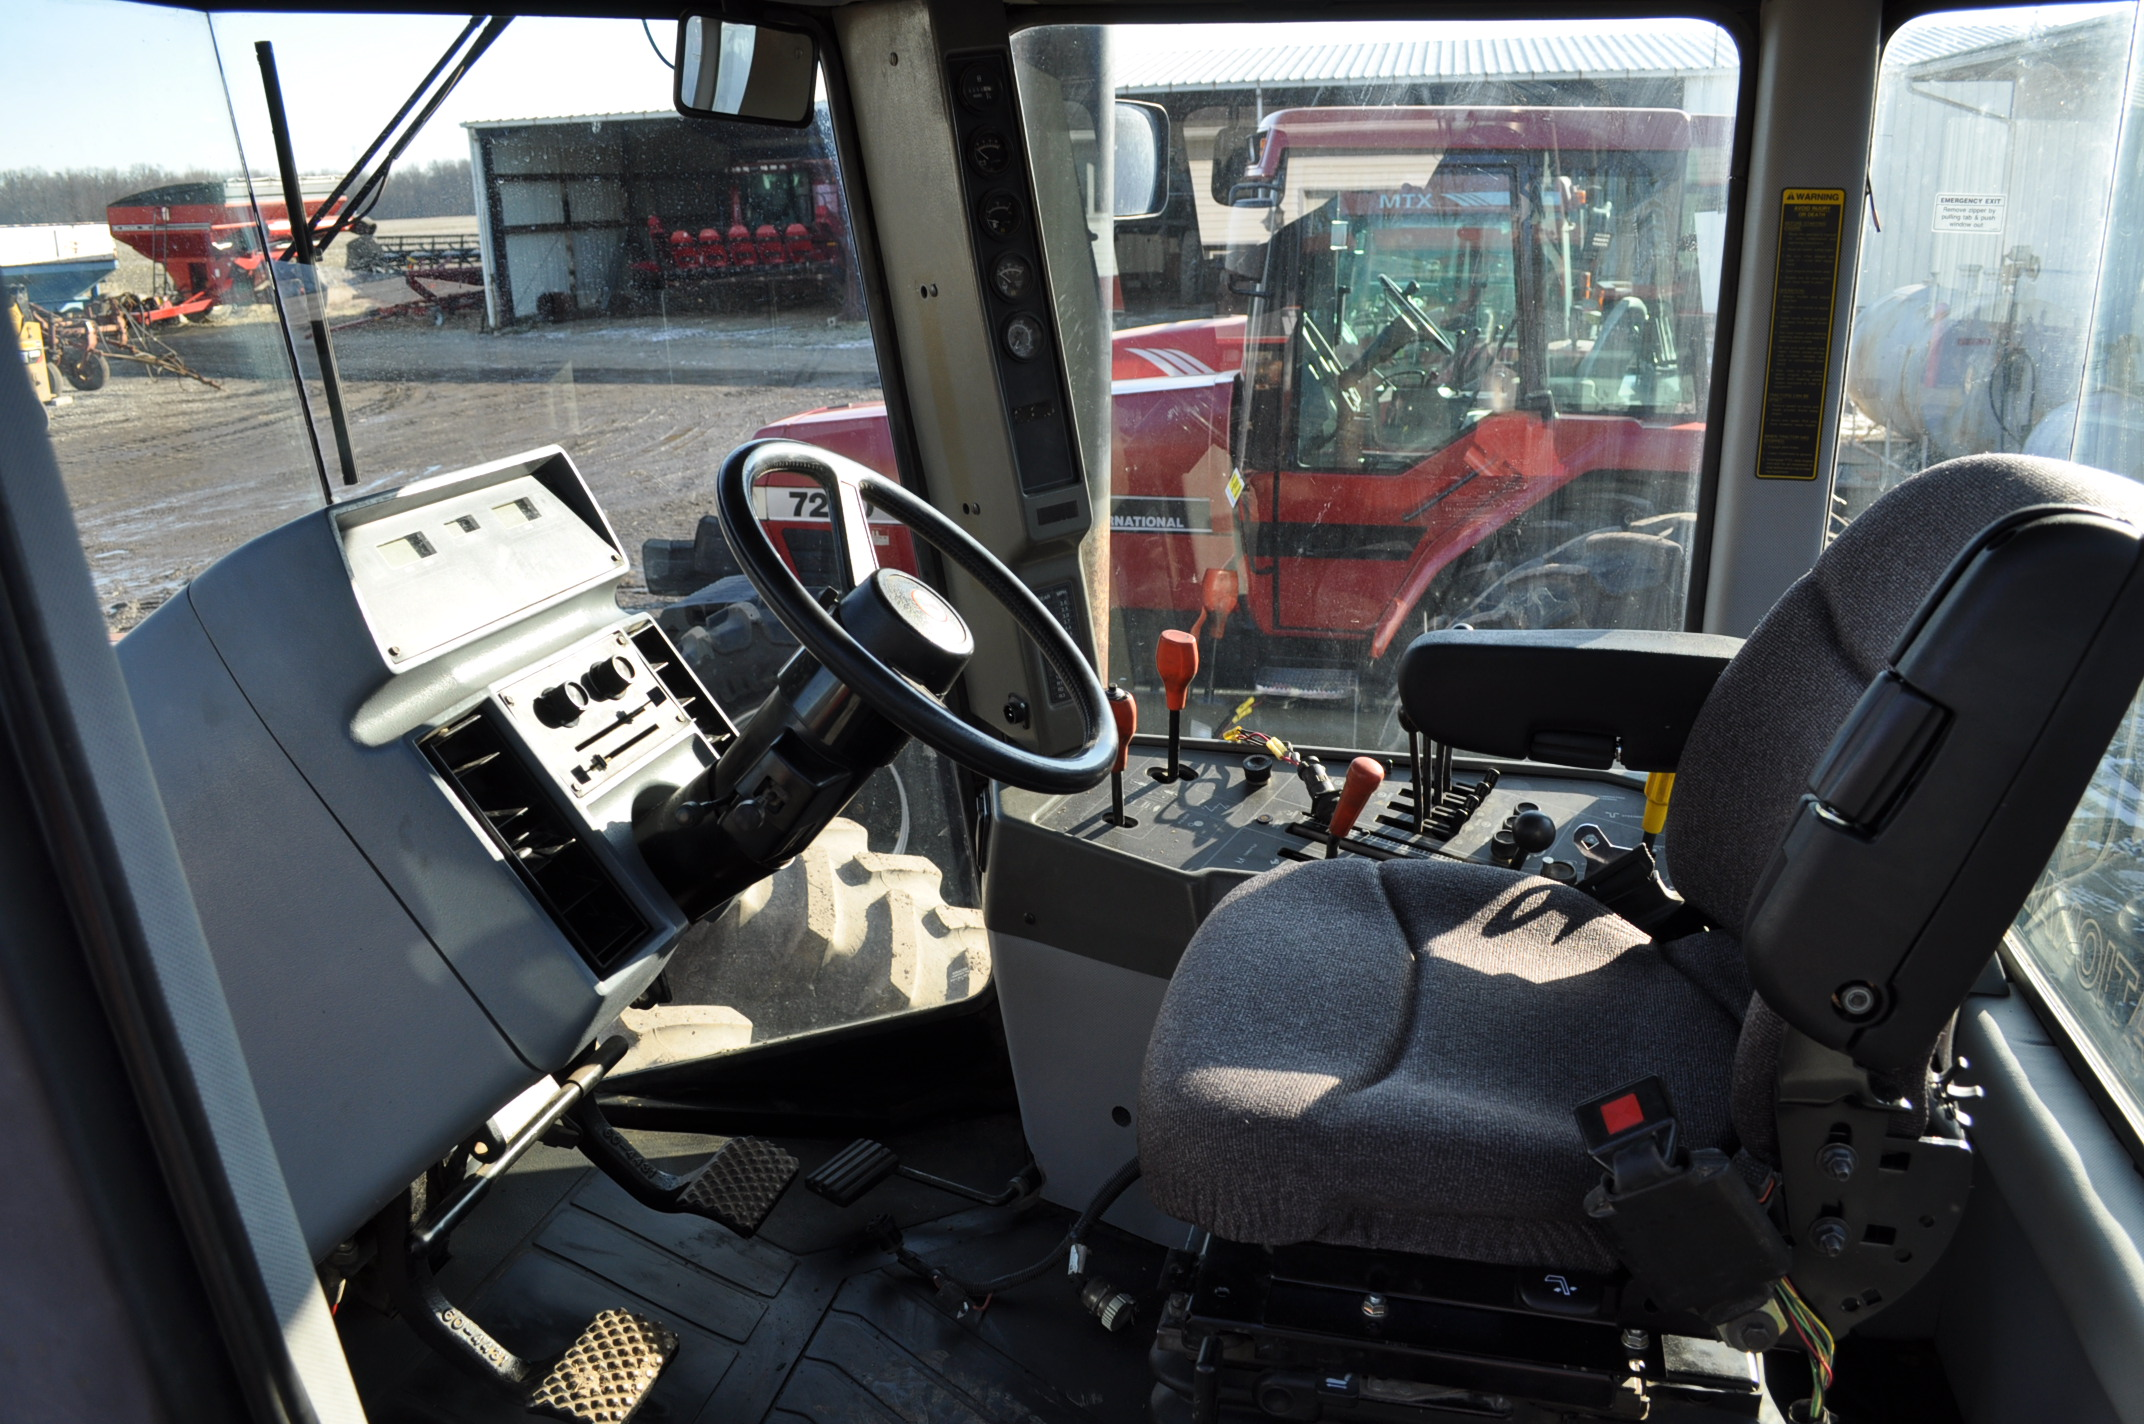 Case IH 9230 4WD tractor, 18.4-38 duals, power shift, skip shift, 4 hyd remotes, 3pt, quick hitch, - Image 17 of 23